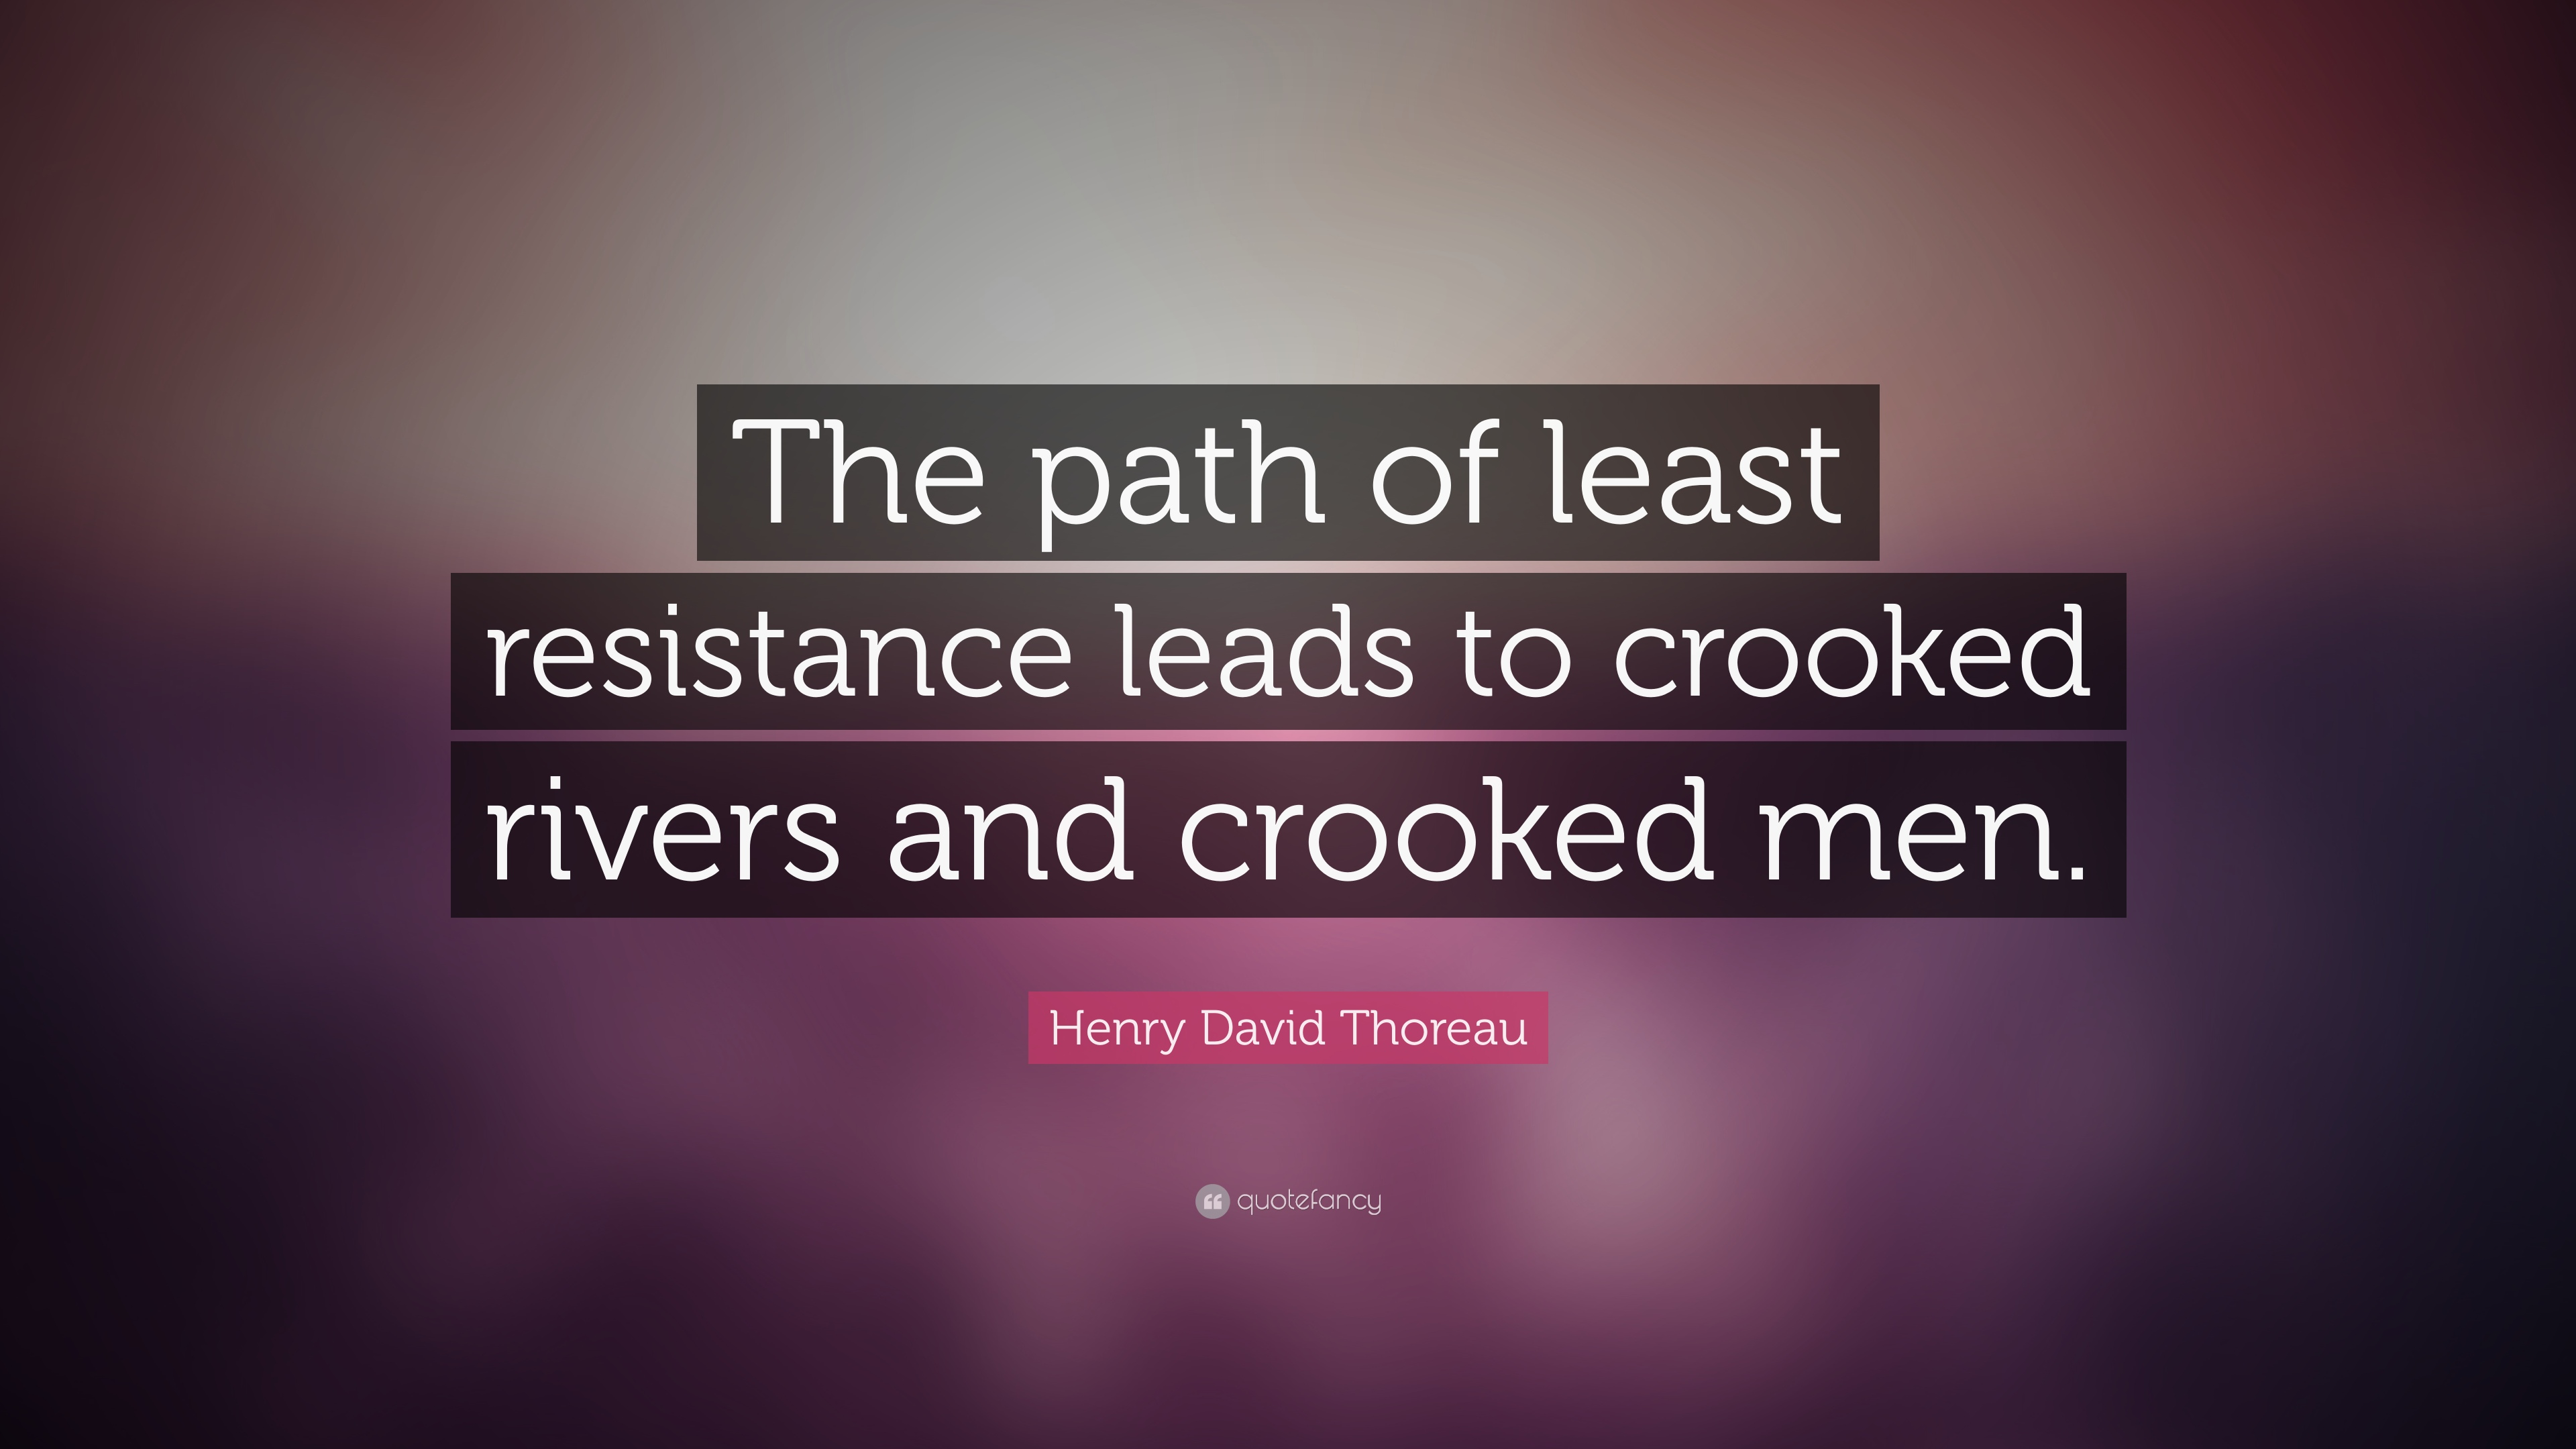 Motivational Quotes On Attitude Wallpapers Henry David Thoreau Quote The Path Of Least Resistance